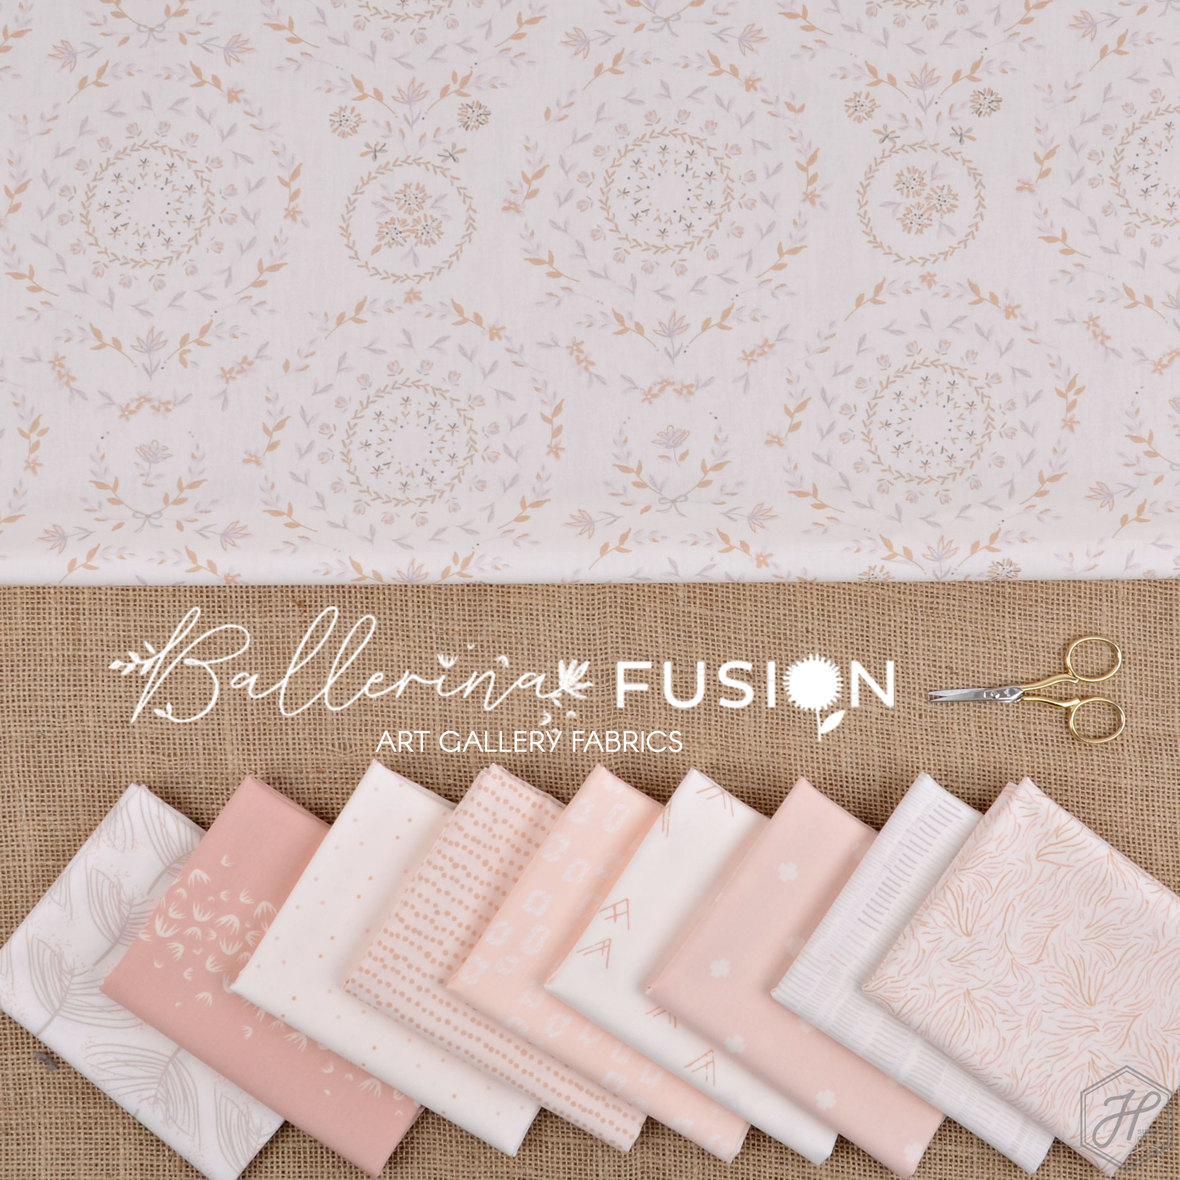 Ballerina-Fusion-Art-Gallery-Fabric-at-Hawthorne-Supply-Co